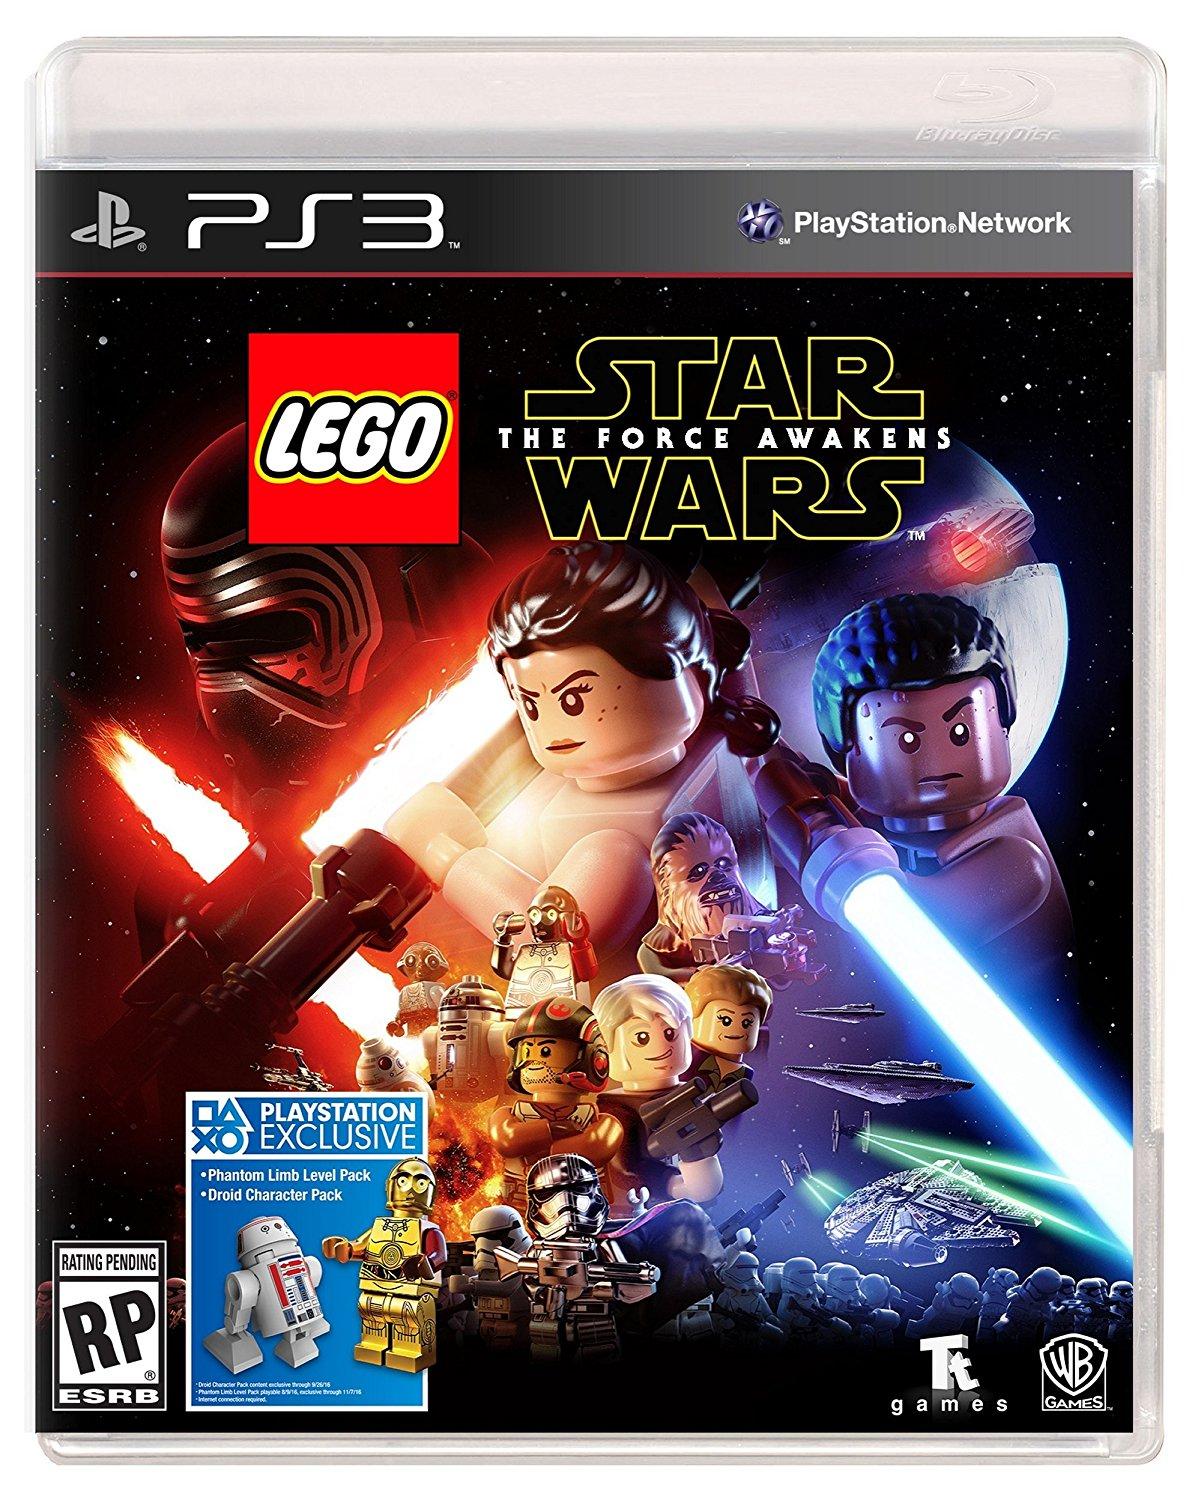 [GAMES] Lego Star Wars The Force Awakens (PS3/EUR)